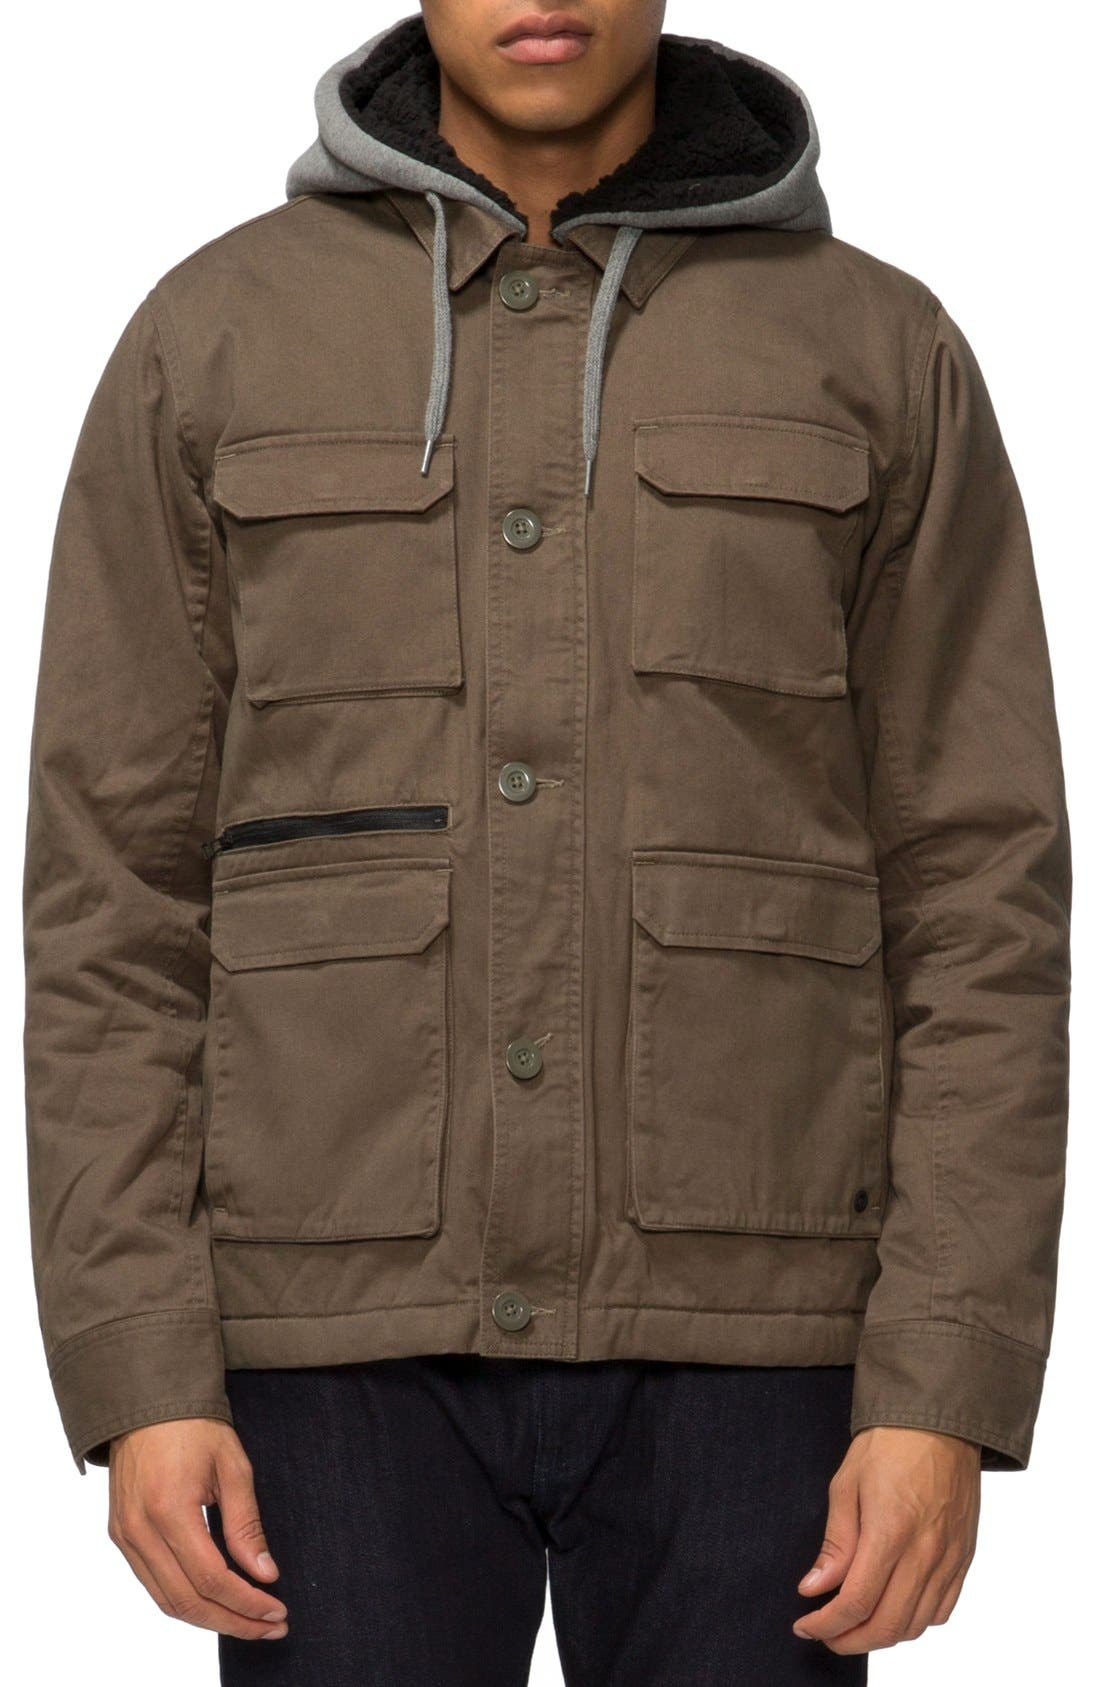 Droogs Plus Field Jacket with Detachable Hood,                         Main,                         color, 304